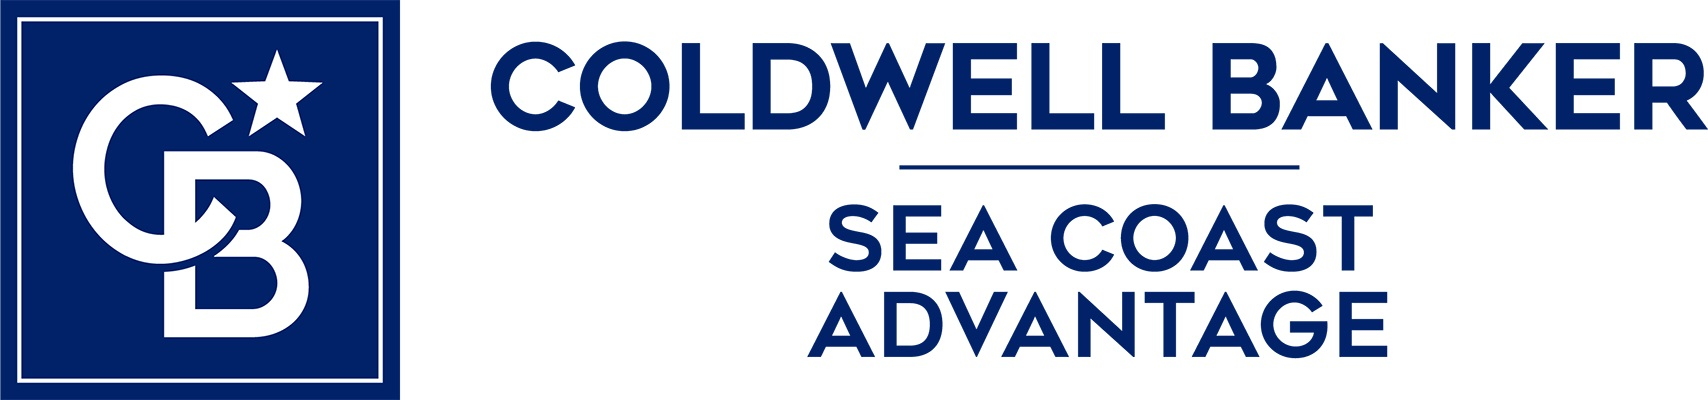 Sandy Monroe - Coldwell Banker Sea Coast Advantage Realty